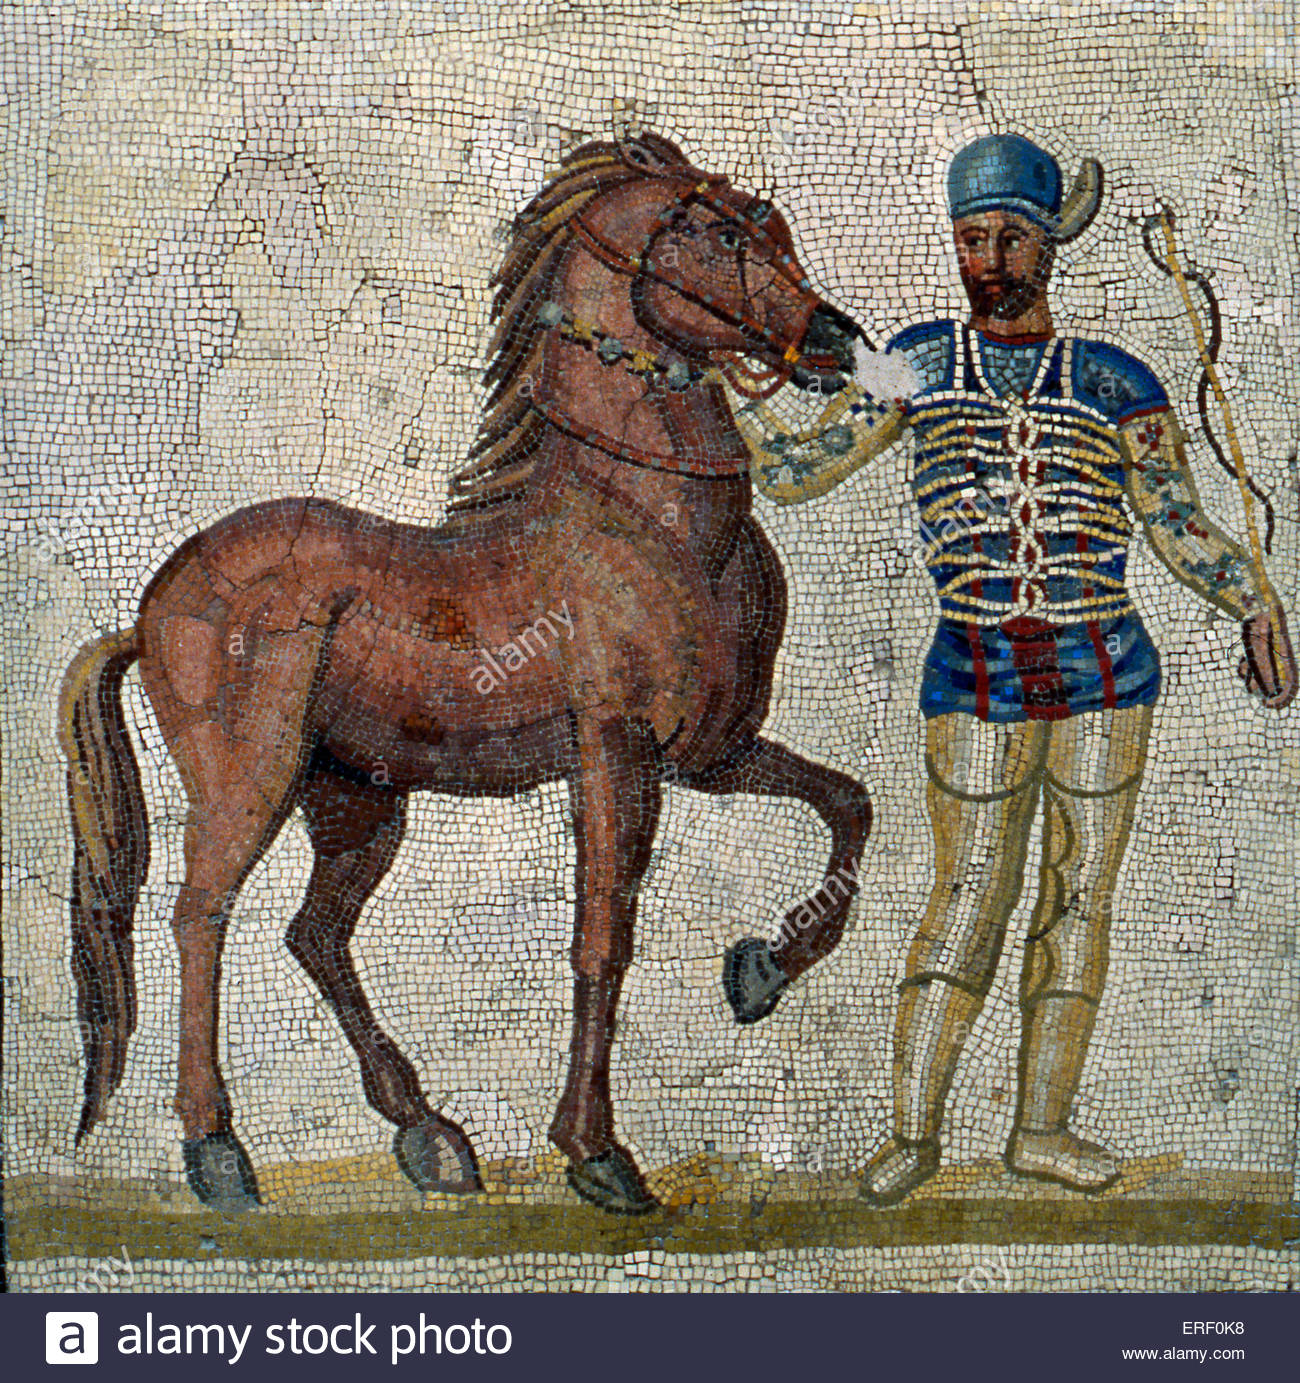 Roman charioteer - 2 nd/ 3rd century A.D mosaic panel. - Stock Image